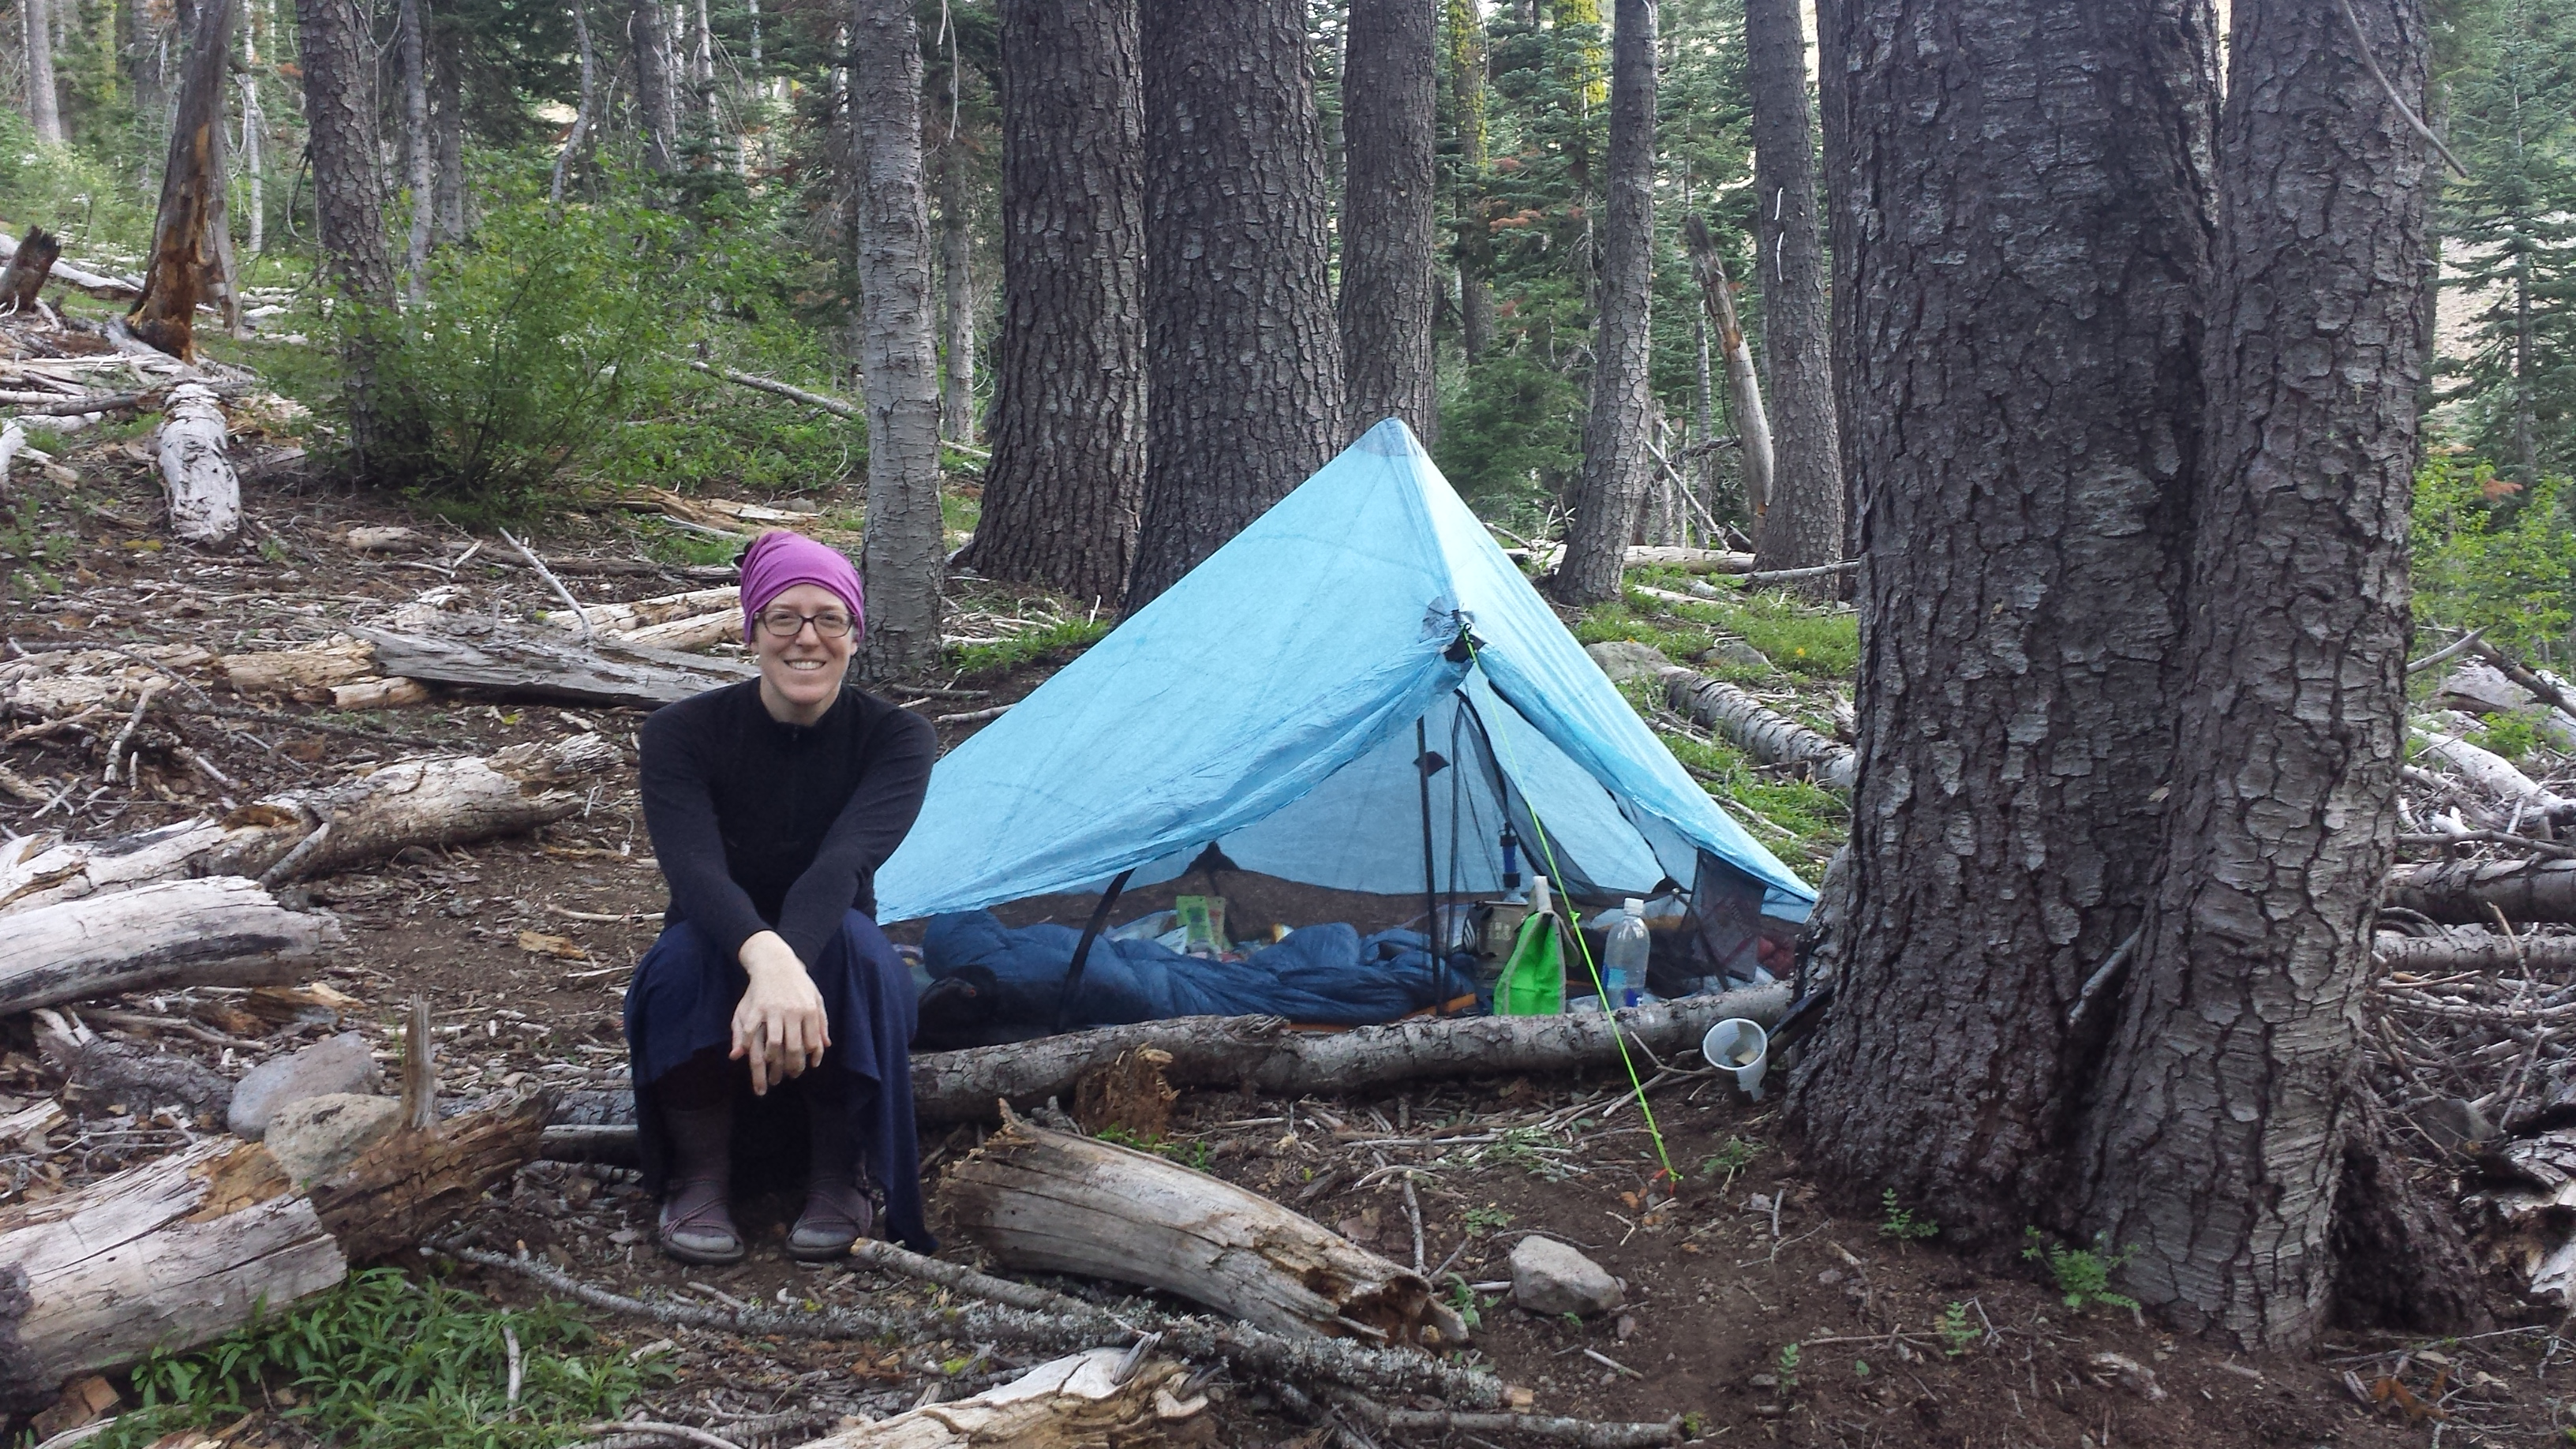 My Zpacks Hexamid Solo Tent & Sierra City to Belden June 2015 u2013 A Skirt In The Dirt